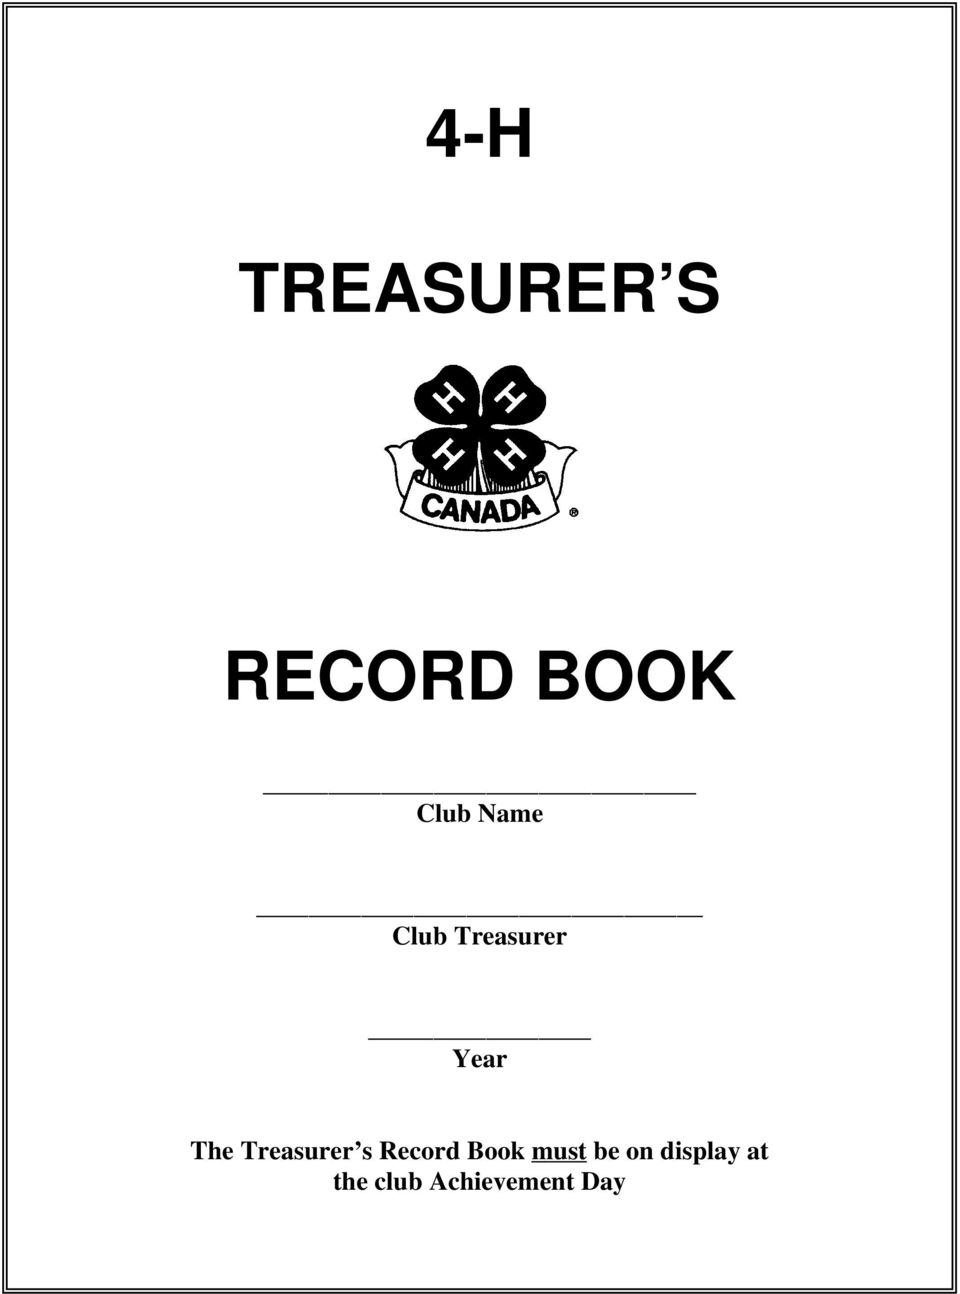 Treasurer s Record Book must be